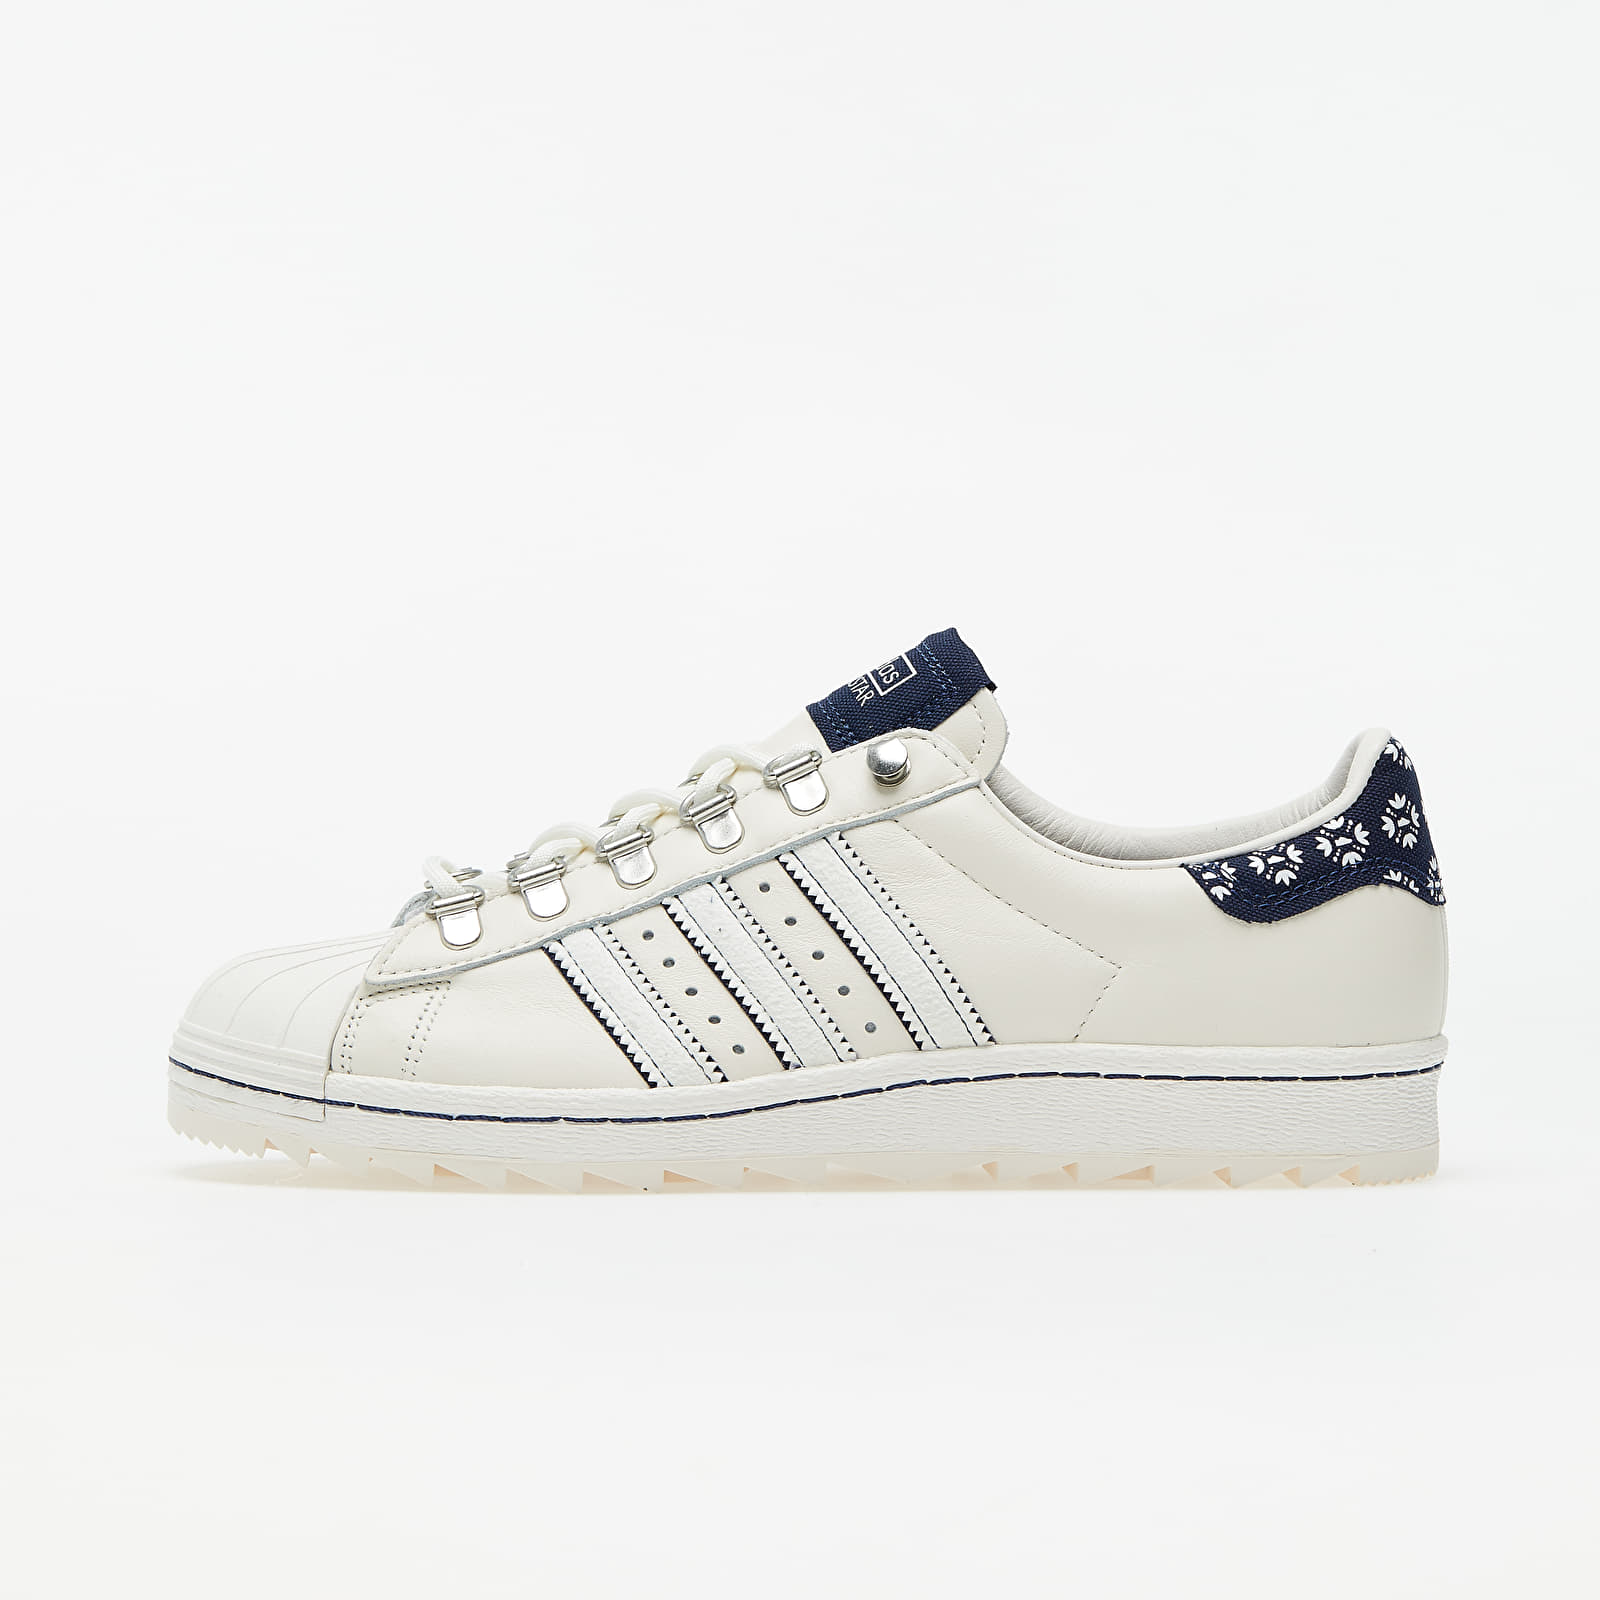 Footshop x adidas Superstar Blueprinting Core White/ Night Indigo/ Night Indigo EUR 48